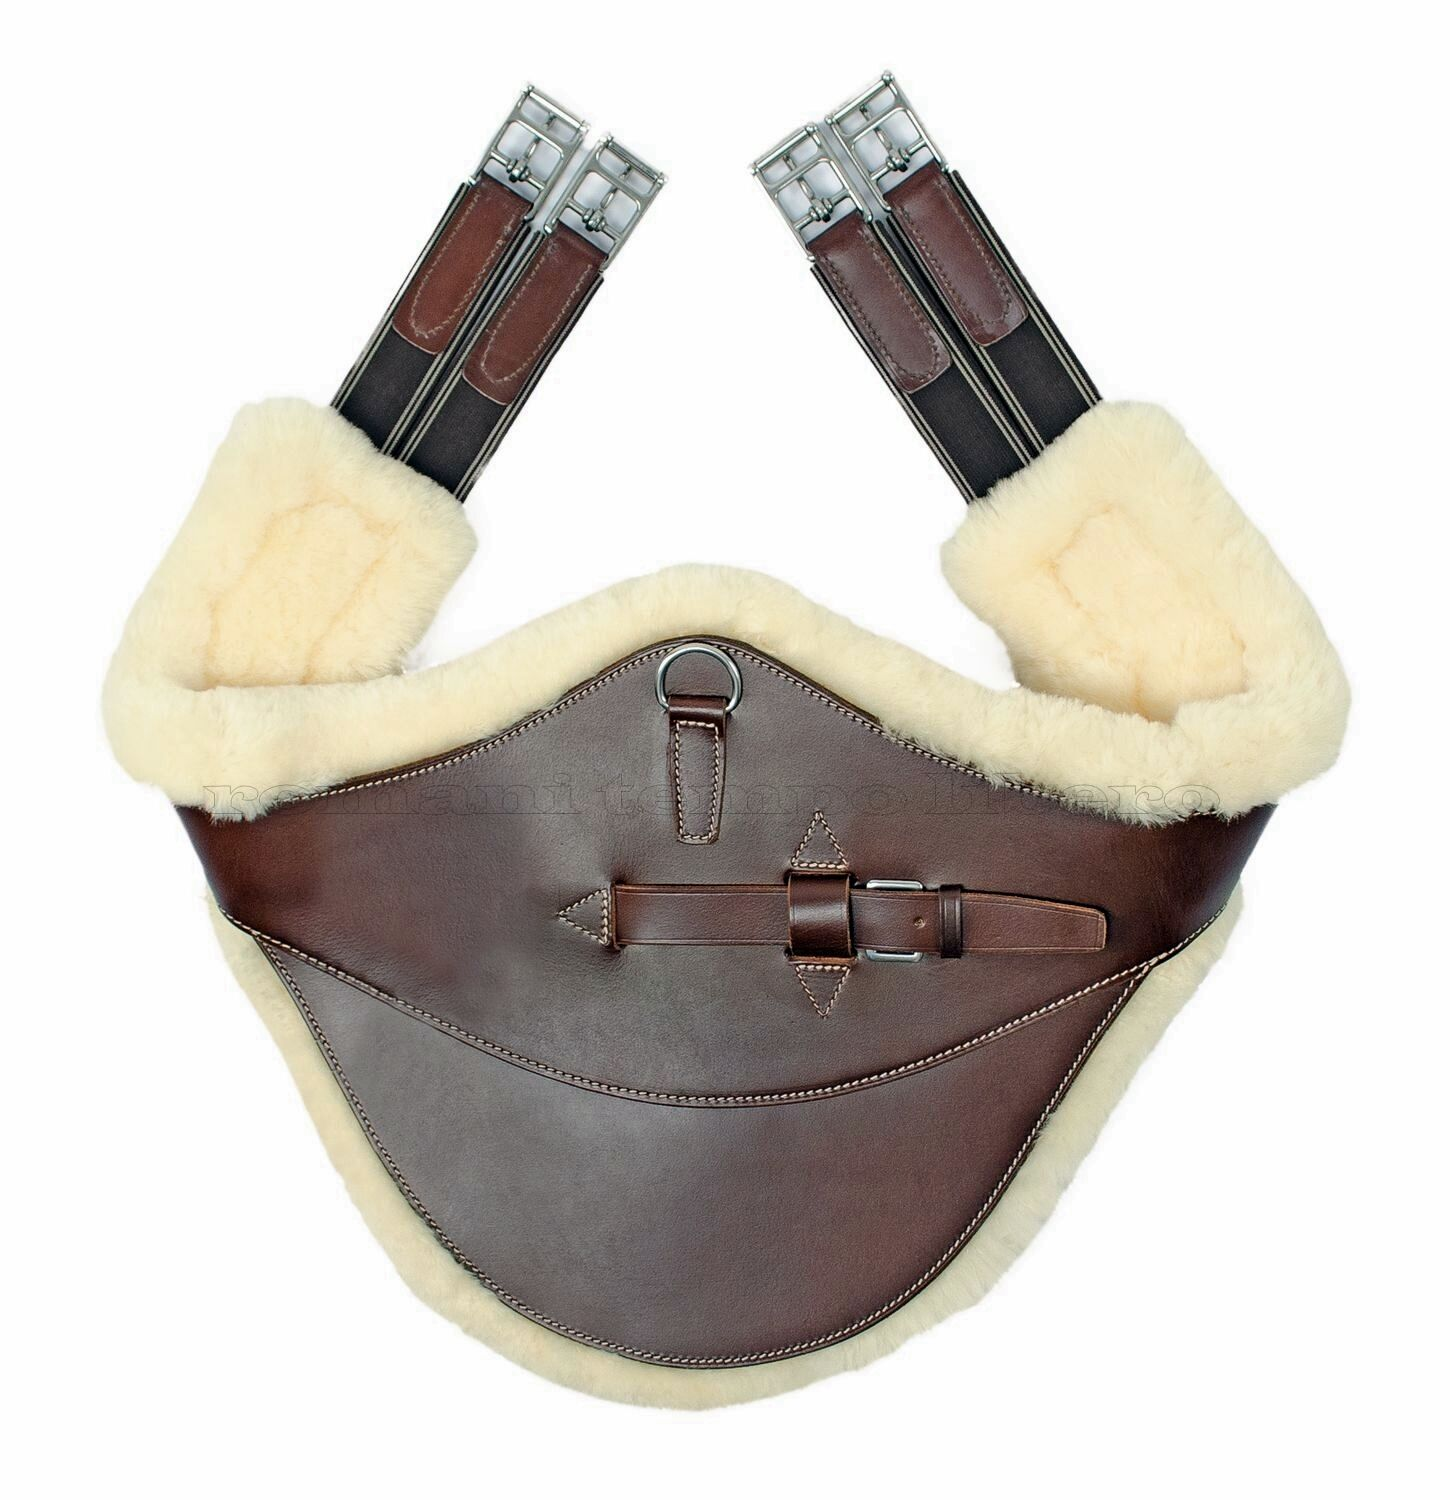 Sottopancia paramponi con montone belly prossoector girth with removable sheepskin